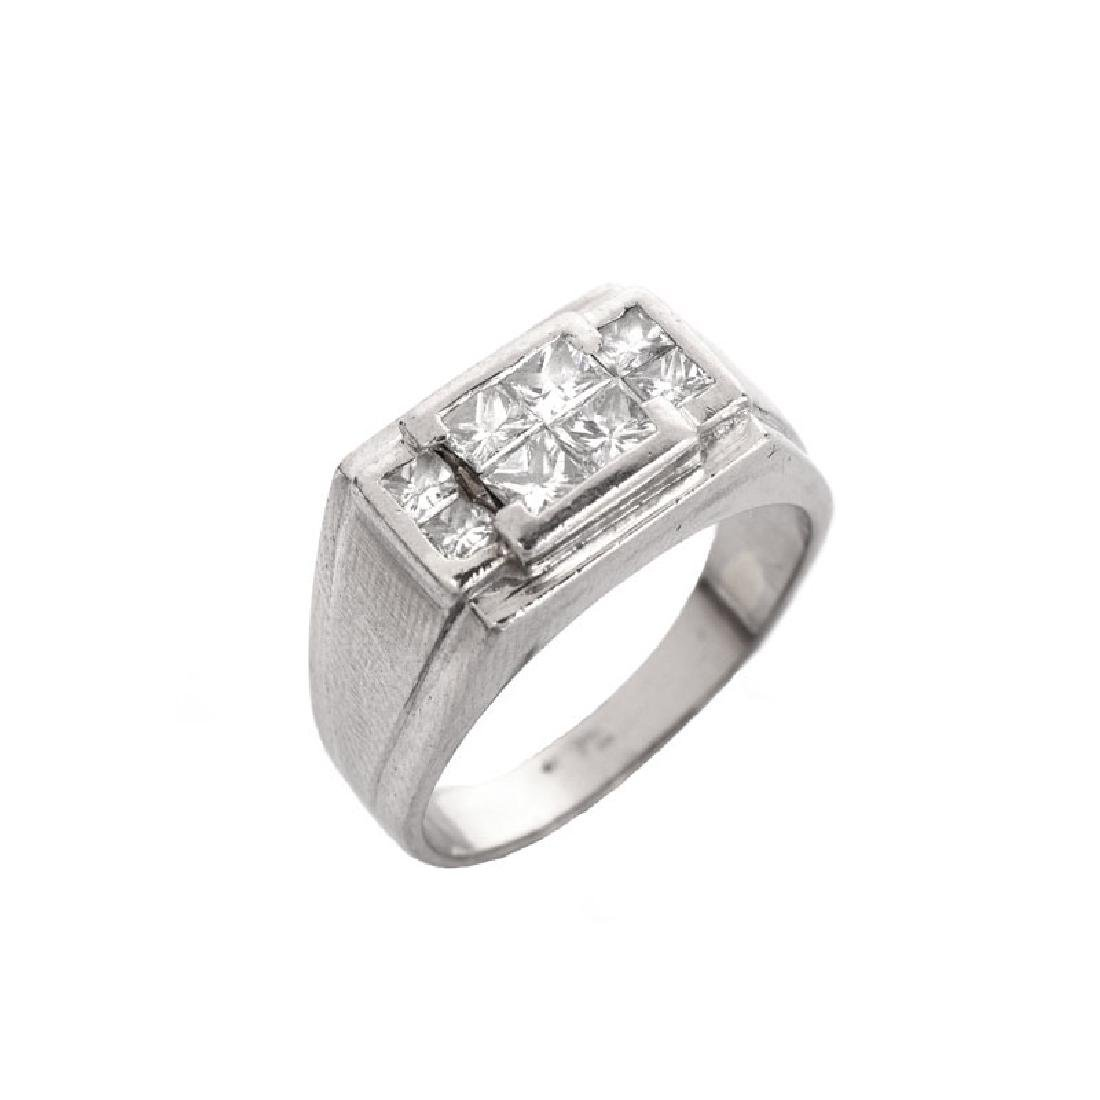 Man's Vintage Approx. 1.0 Carat Square Cut Diamond and